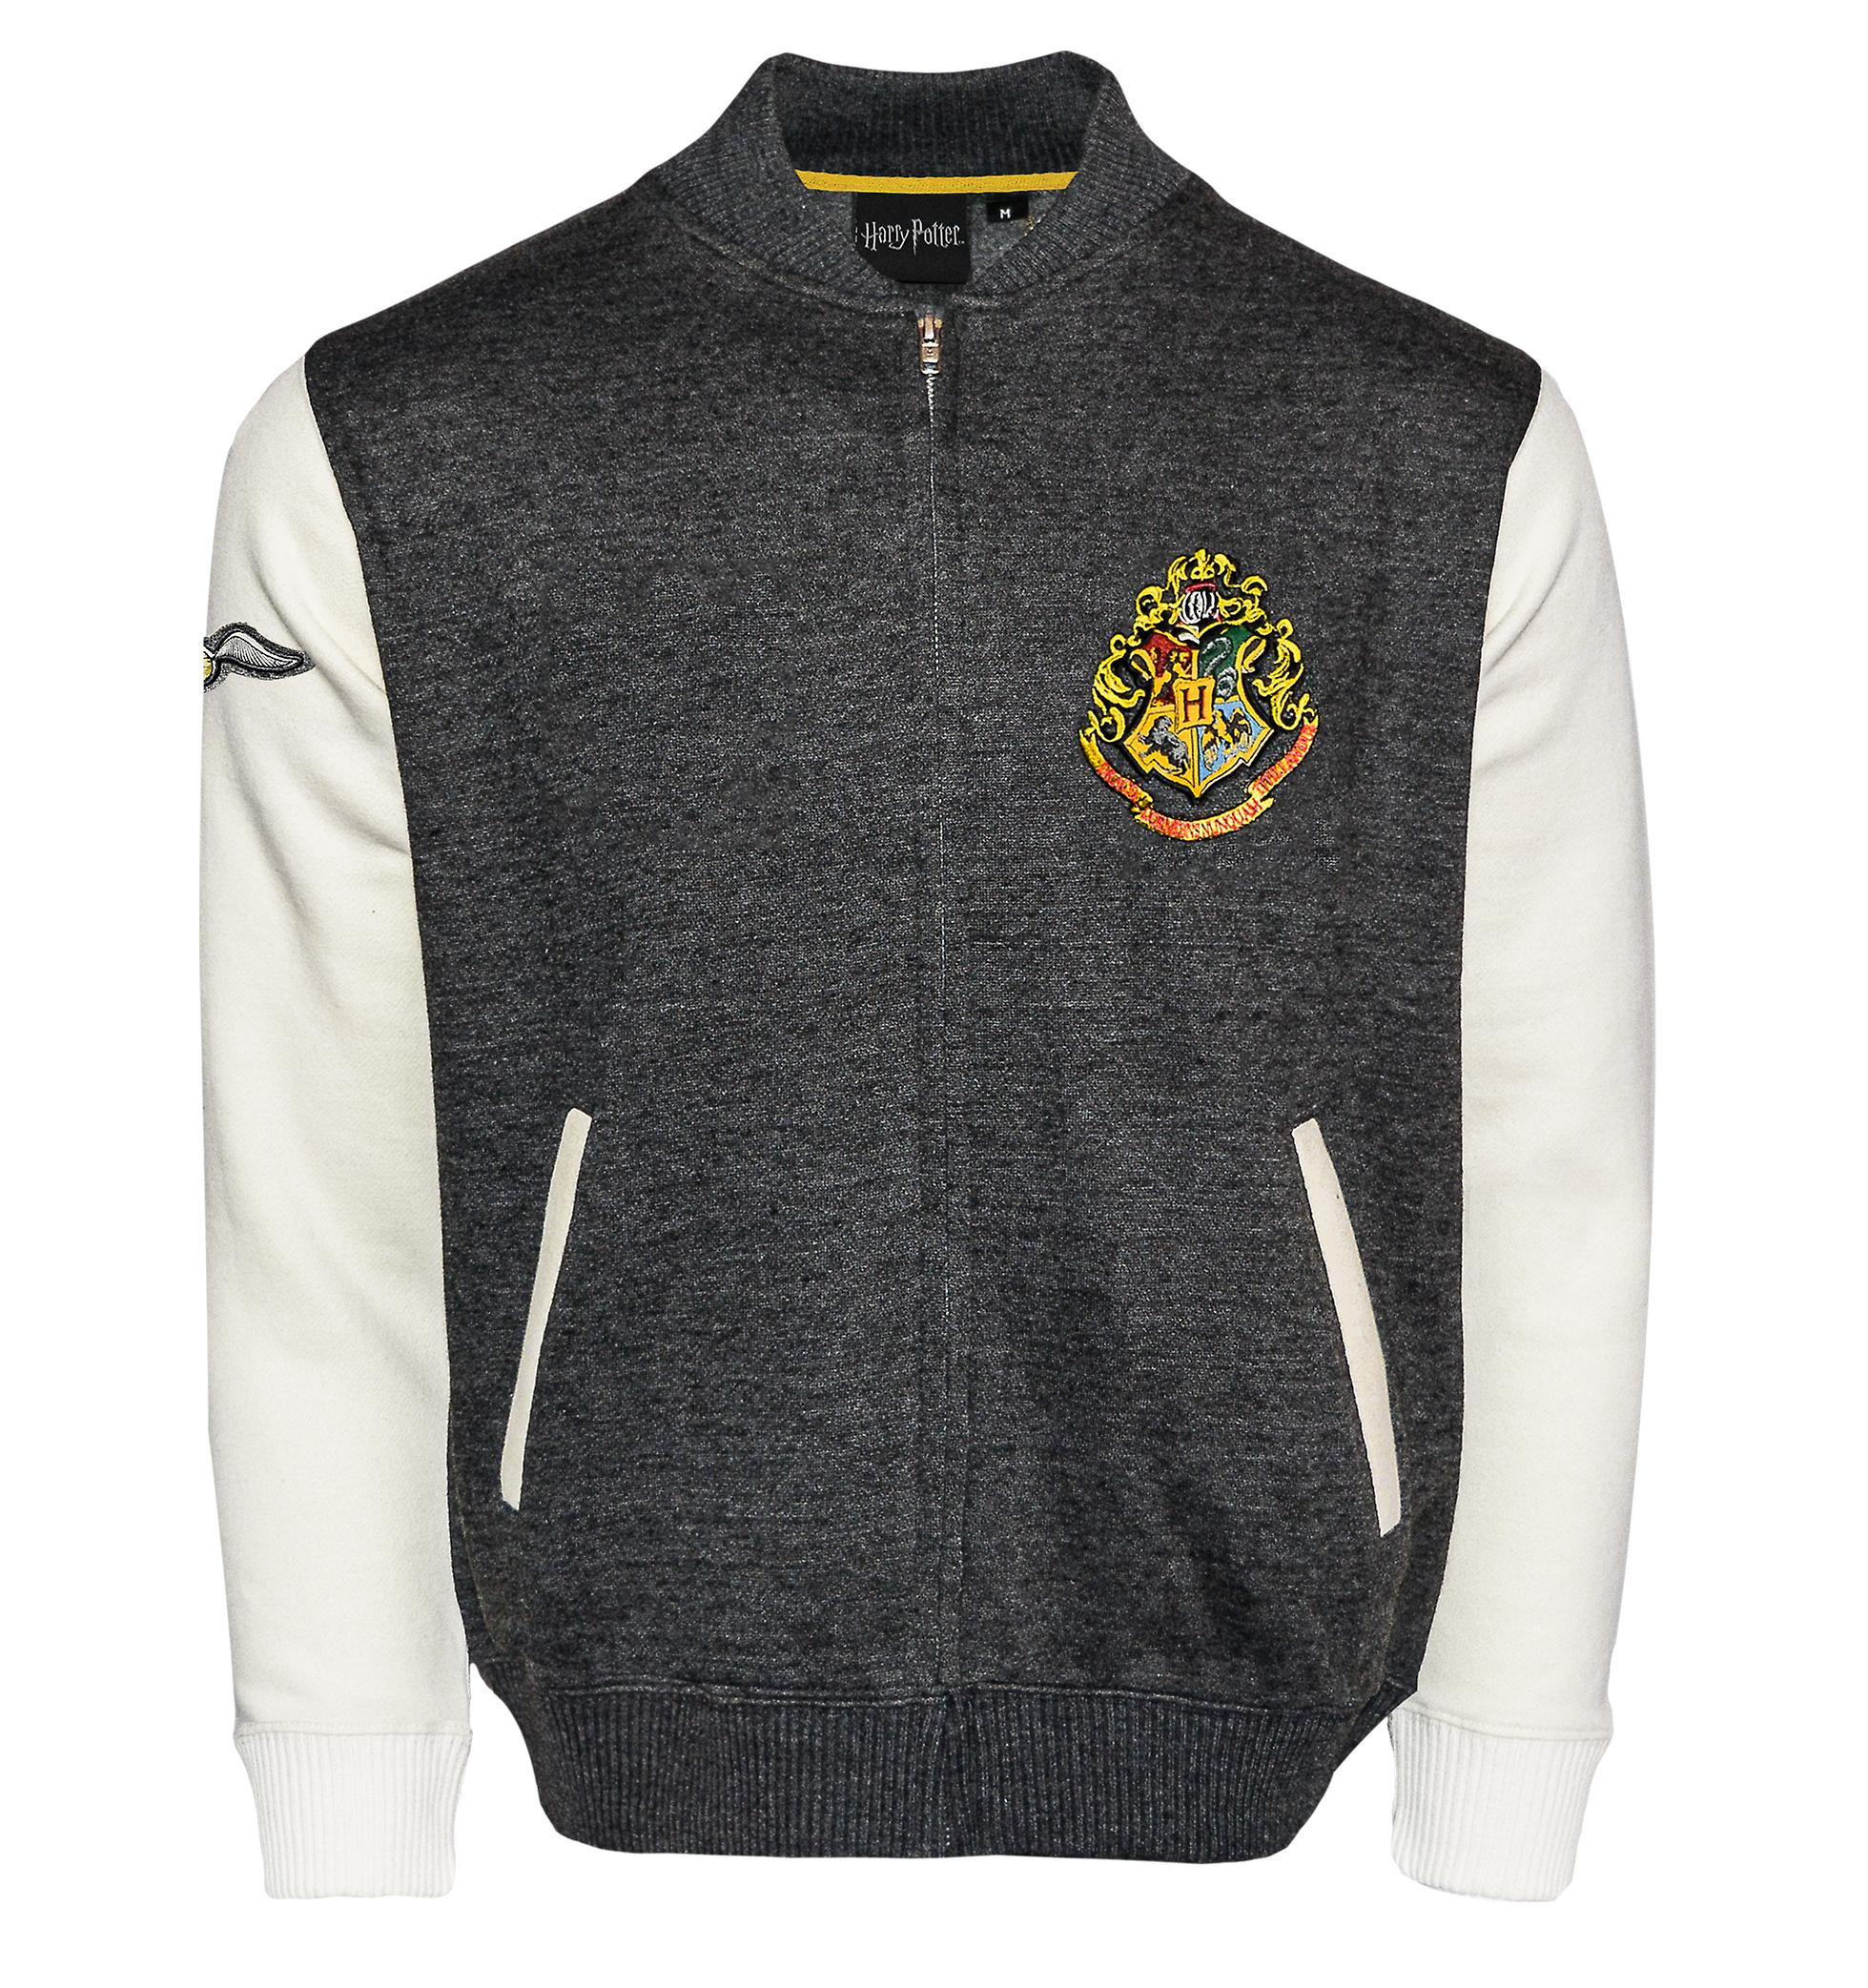 Licensed harry potter™ unisex hogwarts™ applique embroidery baseball jacket